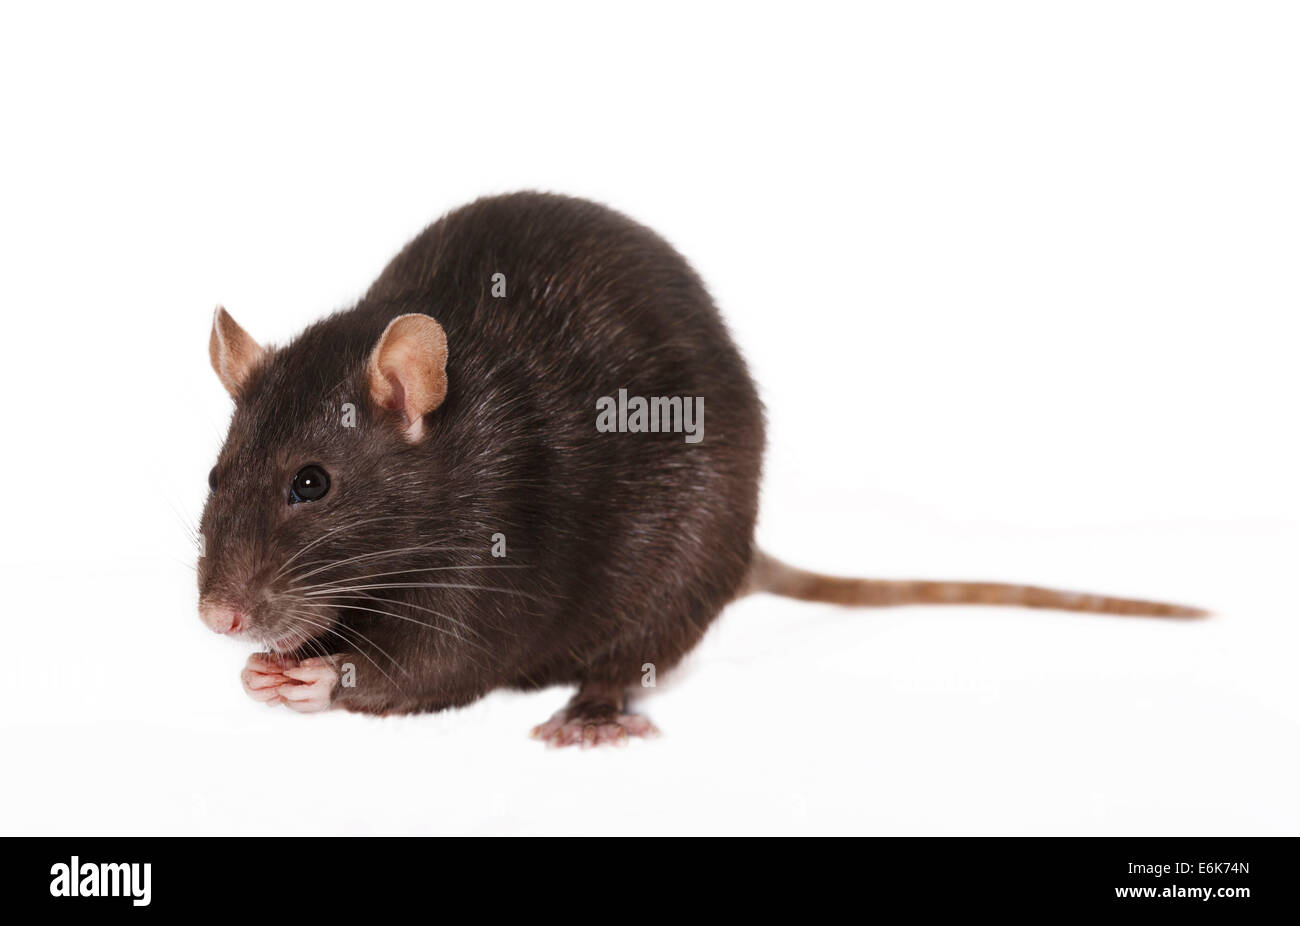 Brown Rat (Rattus norvegicus forma domestica) - Stock Image